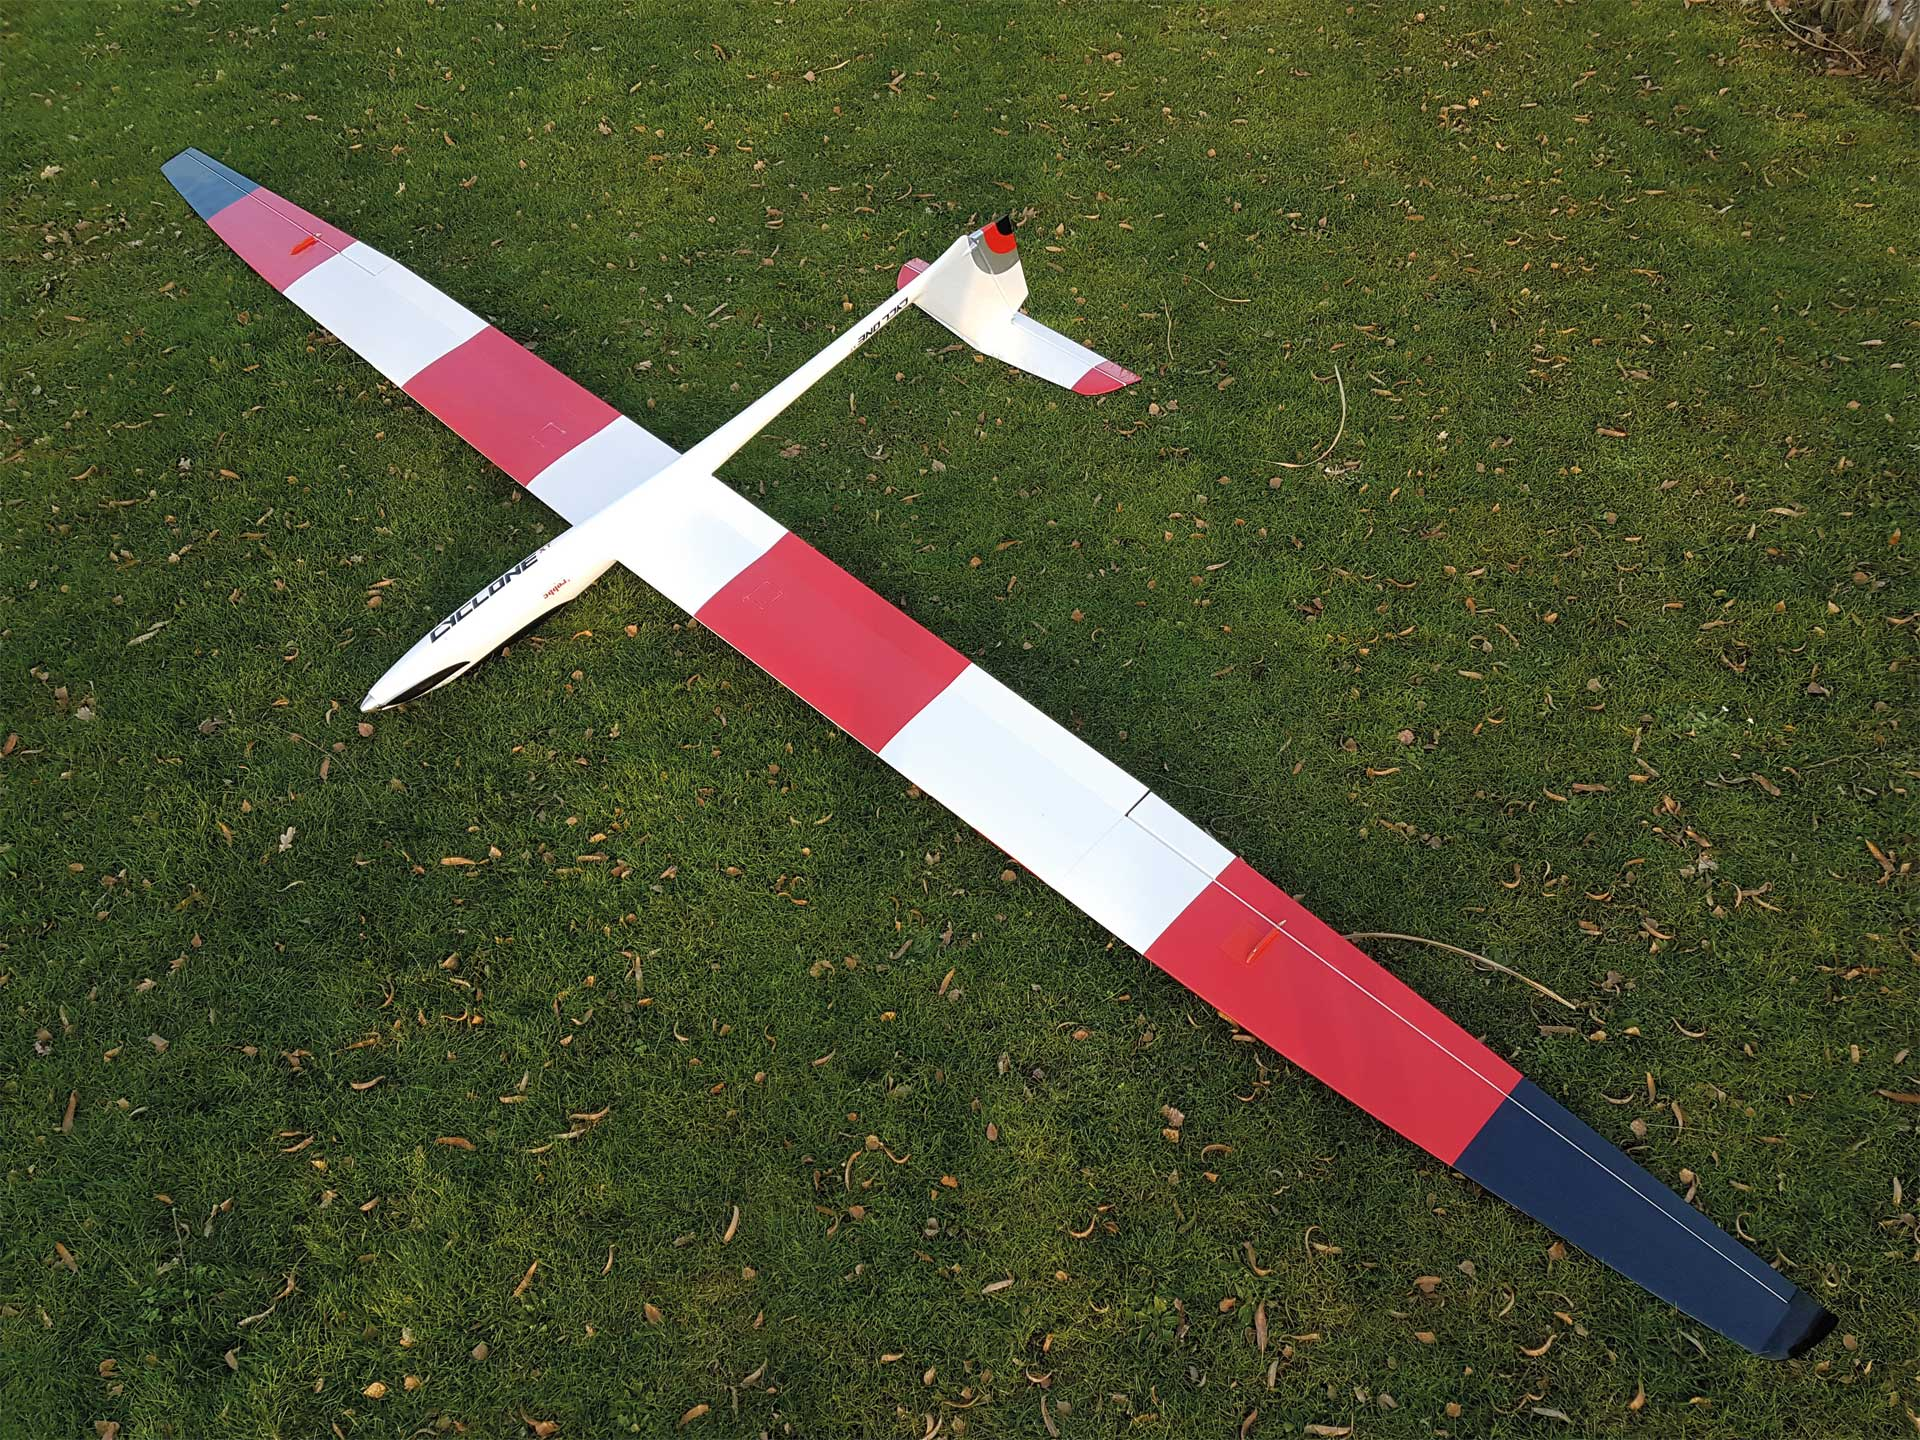 Robbe Modellsport Cyclone XT 6,2m PNP mit GDRP FUSELAGE 4-piece wing with abachi planking